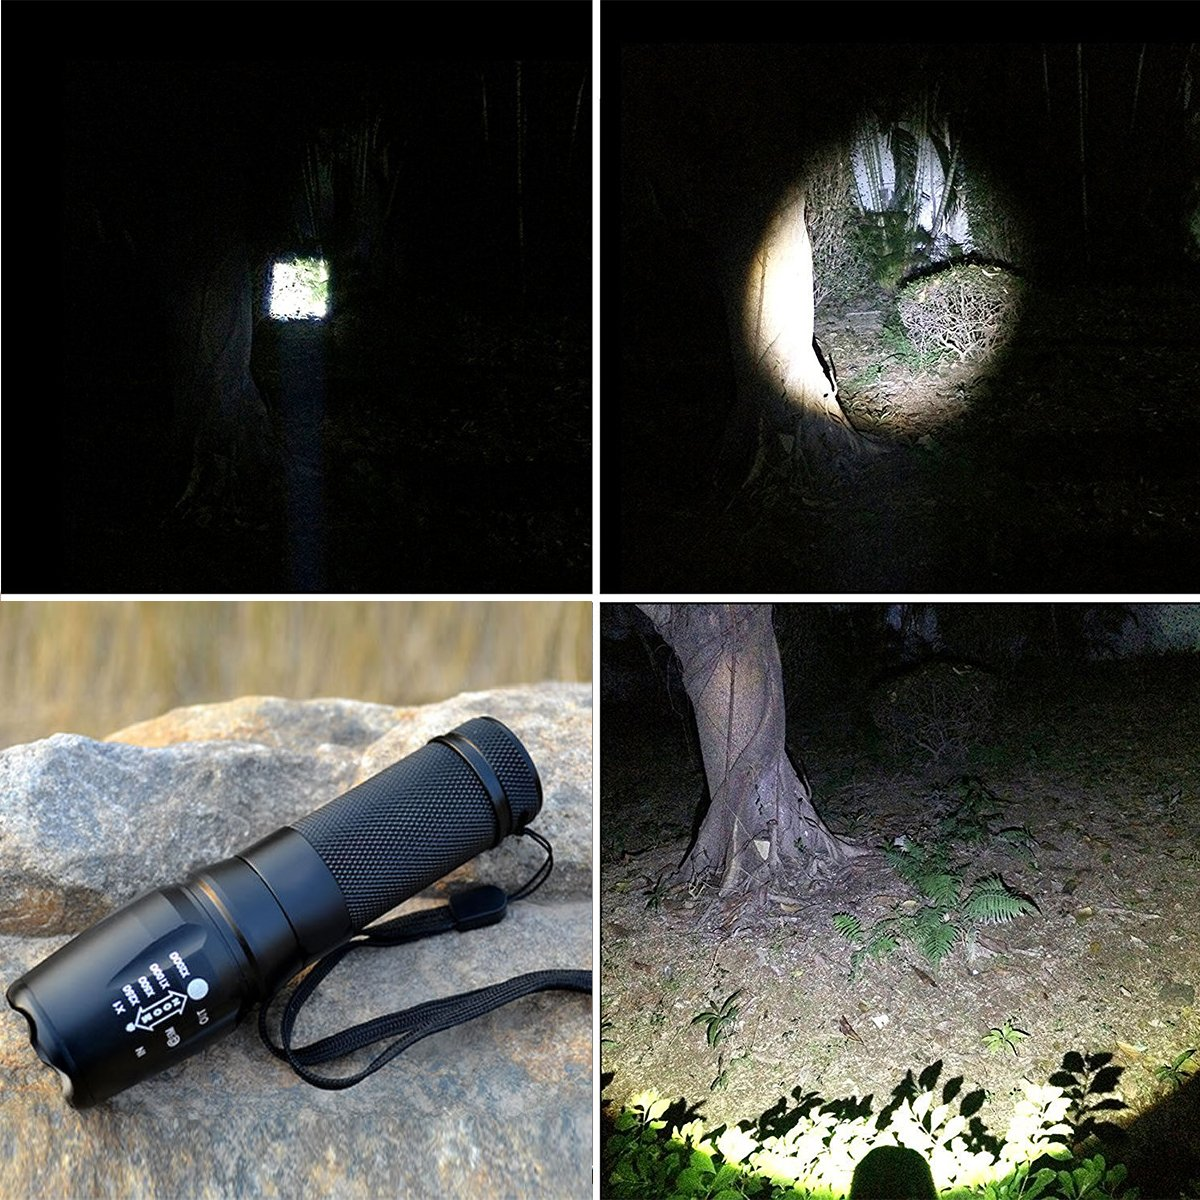 TOPIA STAR Powerful Flashlight, Professional Outdoor Warerproof Rechargeable Led Flashlight by TOPIA STAR (Image #6)